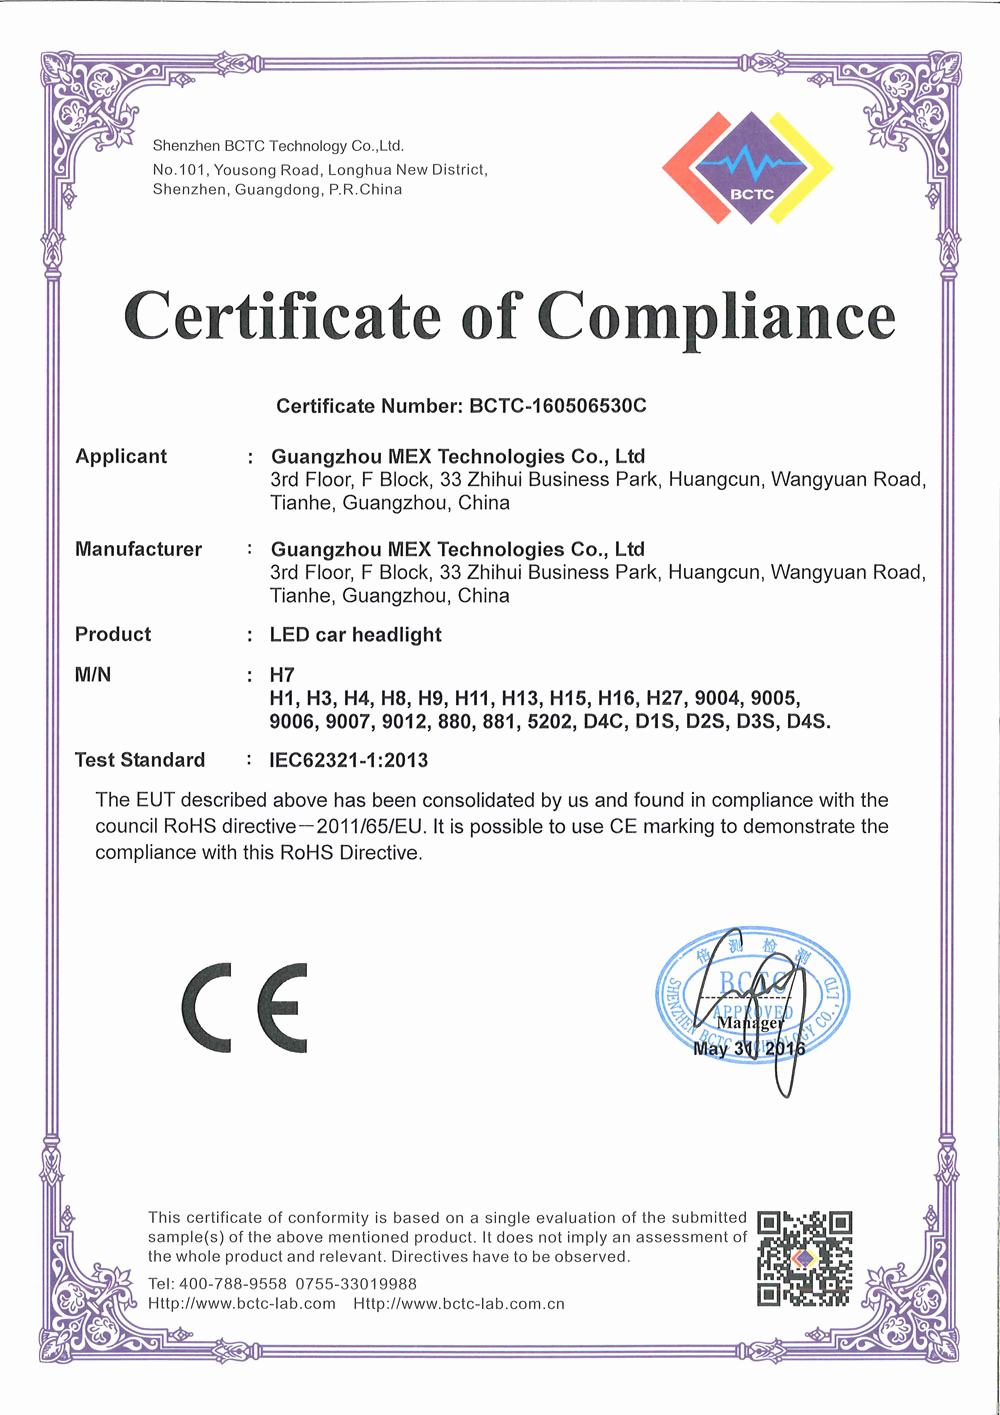 Certificate Of Compliance Template Elegant Rohs Certificate Of Pliance Guangzhou Mex